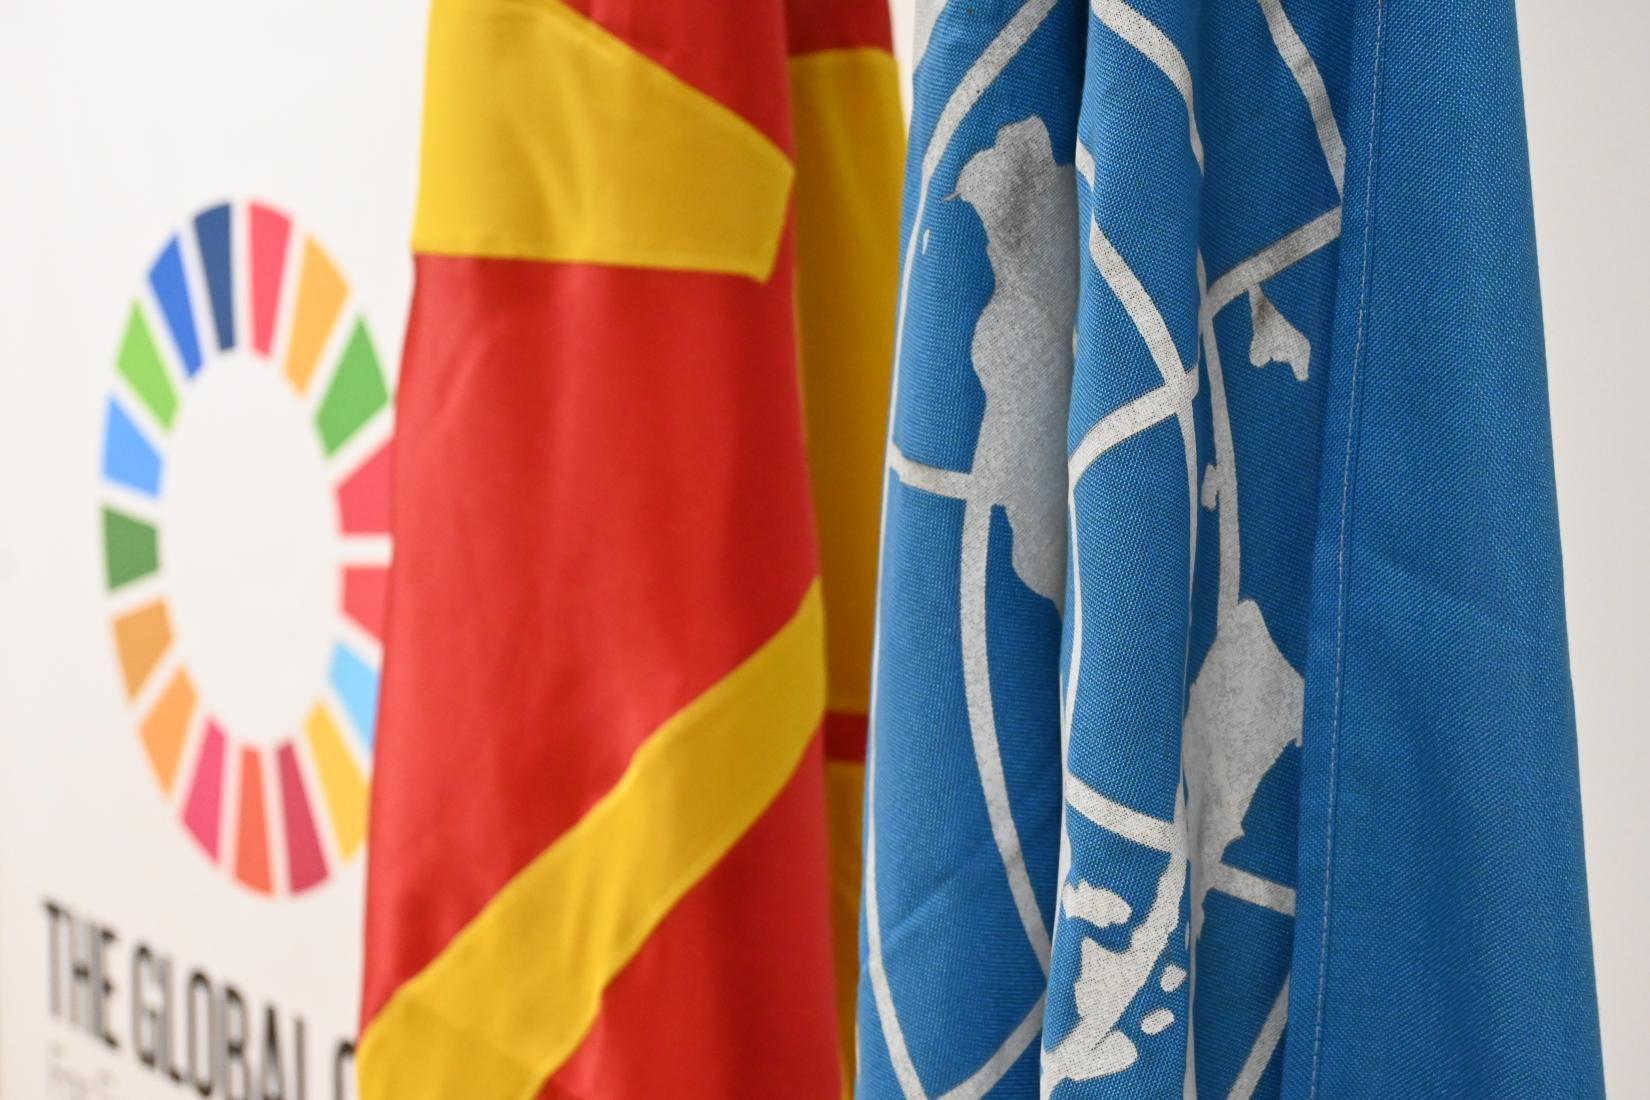 Flags of UN and North Macedonia